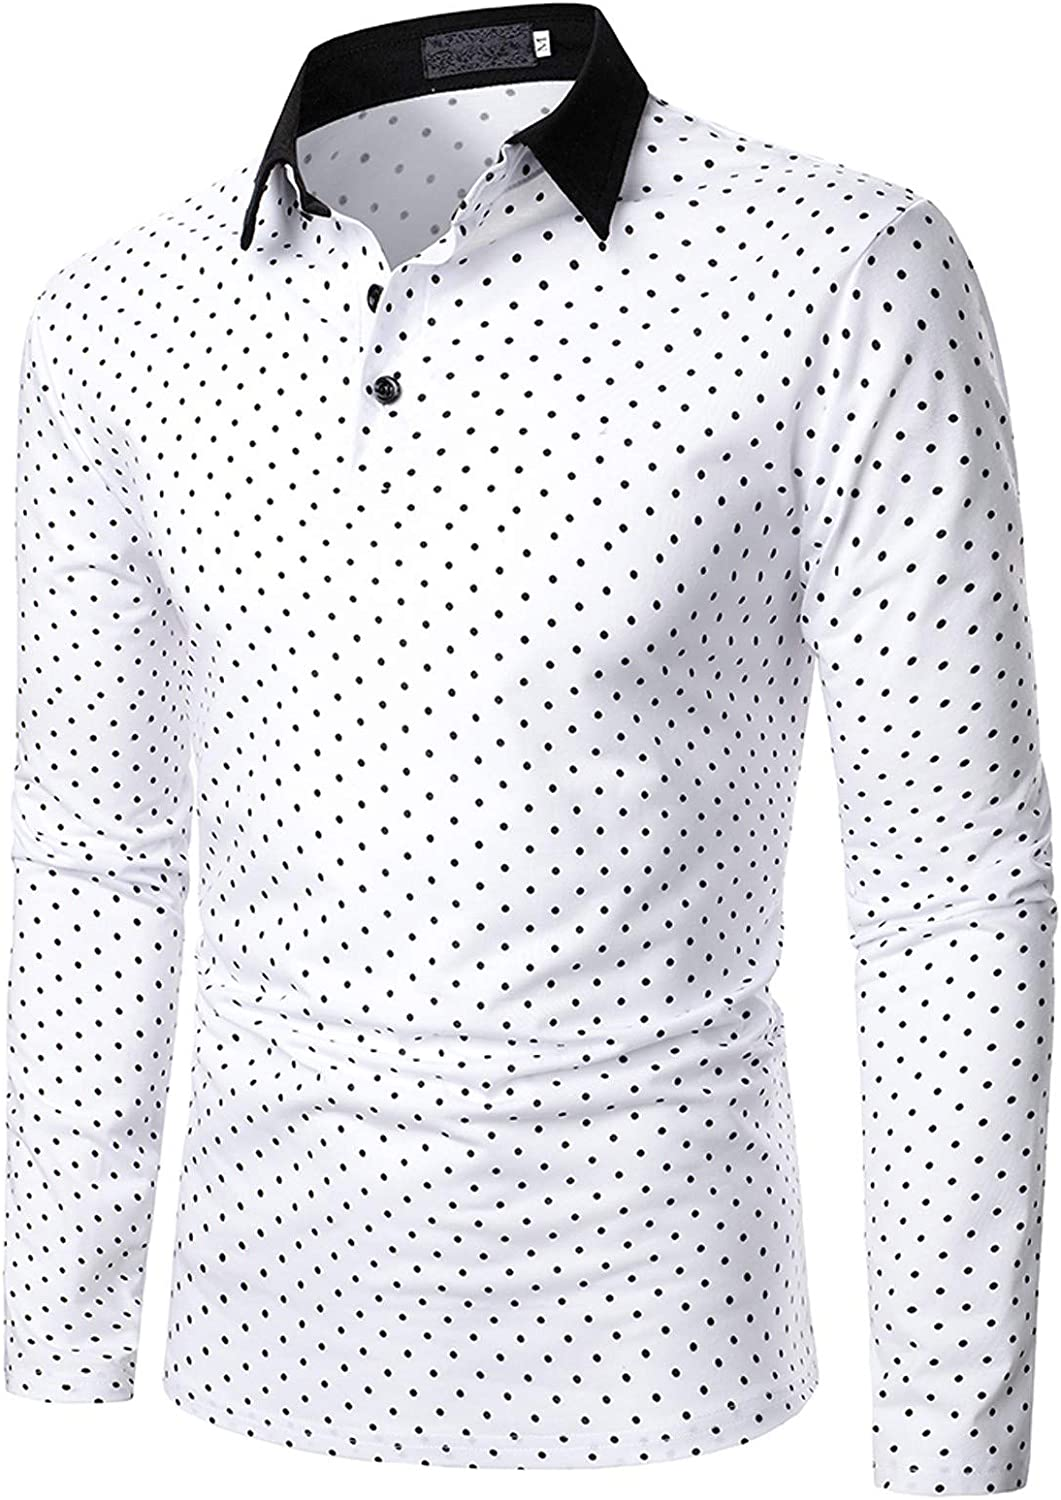 UBST Patchwork Polo Shirts for Mens, 2021 Fall Long Sleeve Zipper Button Turn-down Collar Business Casual Shirt Tops